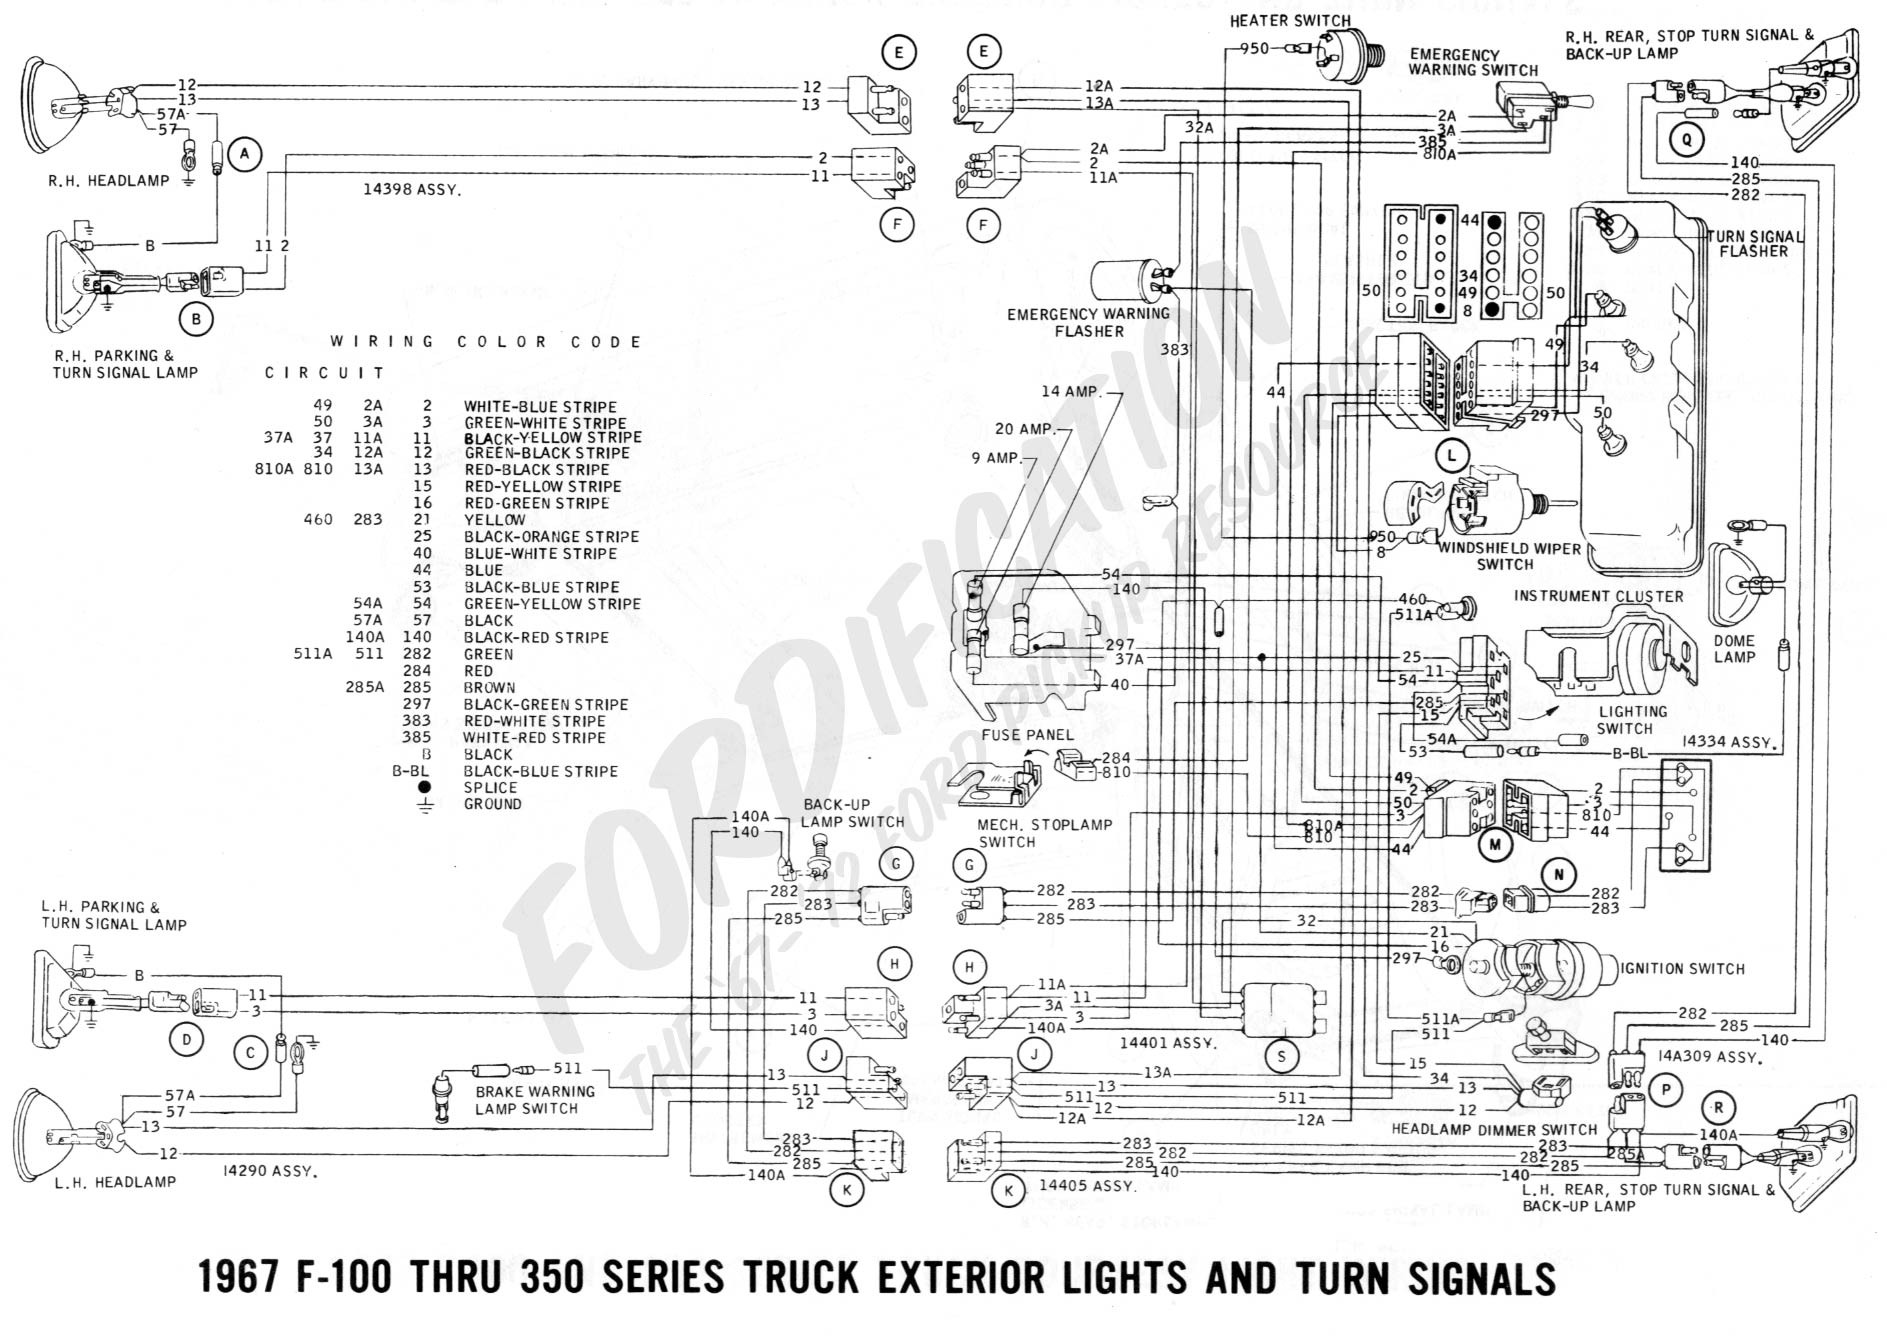 59 Ford Wiring Diagram | Control Cables & Wiring Diagram  F Turn Signal Wiring Schematic on turn signal capacitor, turn up txt, turn signal cruise control, turn signal connectors, turn signal troubleshooting, turn signals for rhino, simple turn signal schematic, turn signal timer, turn signal repair, turn signal switch schematic, turn signal relay, turn signals chrome glow, turn signals wiring in old cars, 1991 ford explorer schematic, harley turn signal schematic, turn signal fuse, signal generator schematic, turn signal hood, signal flasher schematic, turn signal wire,